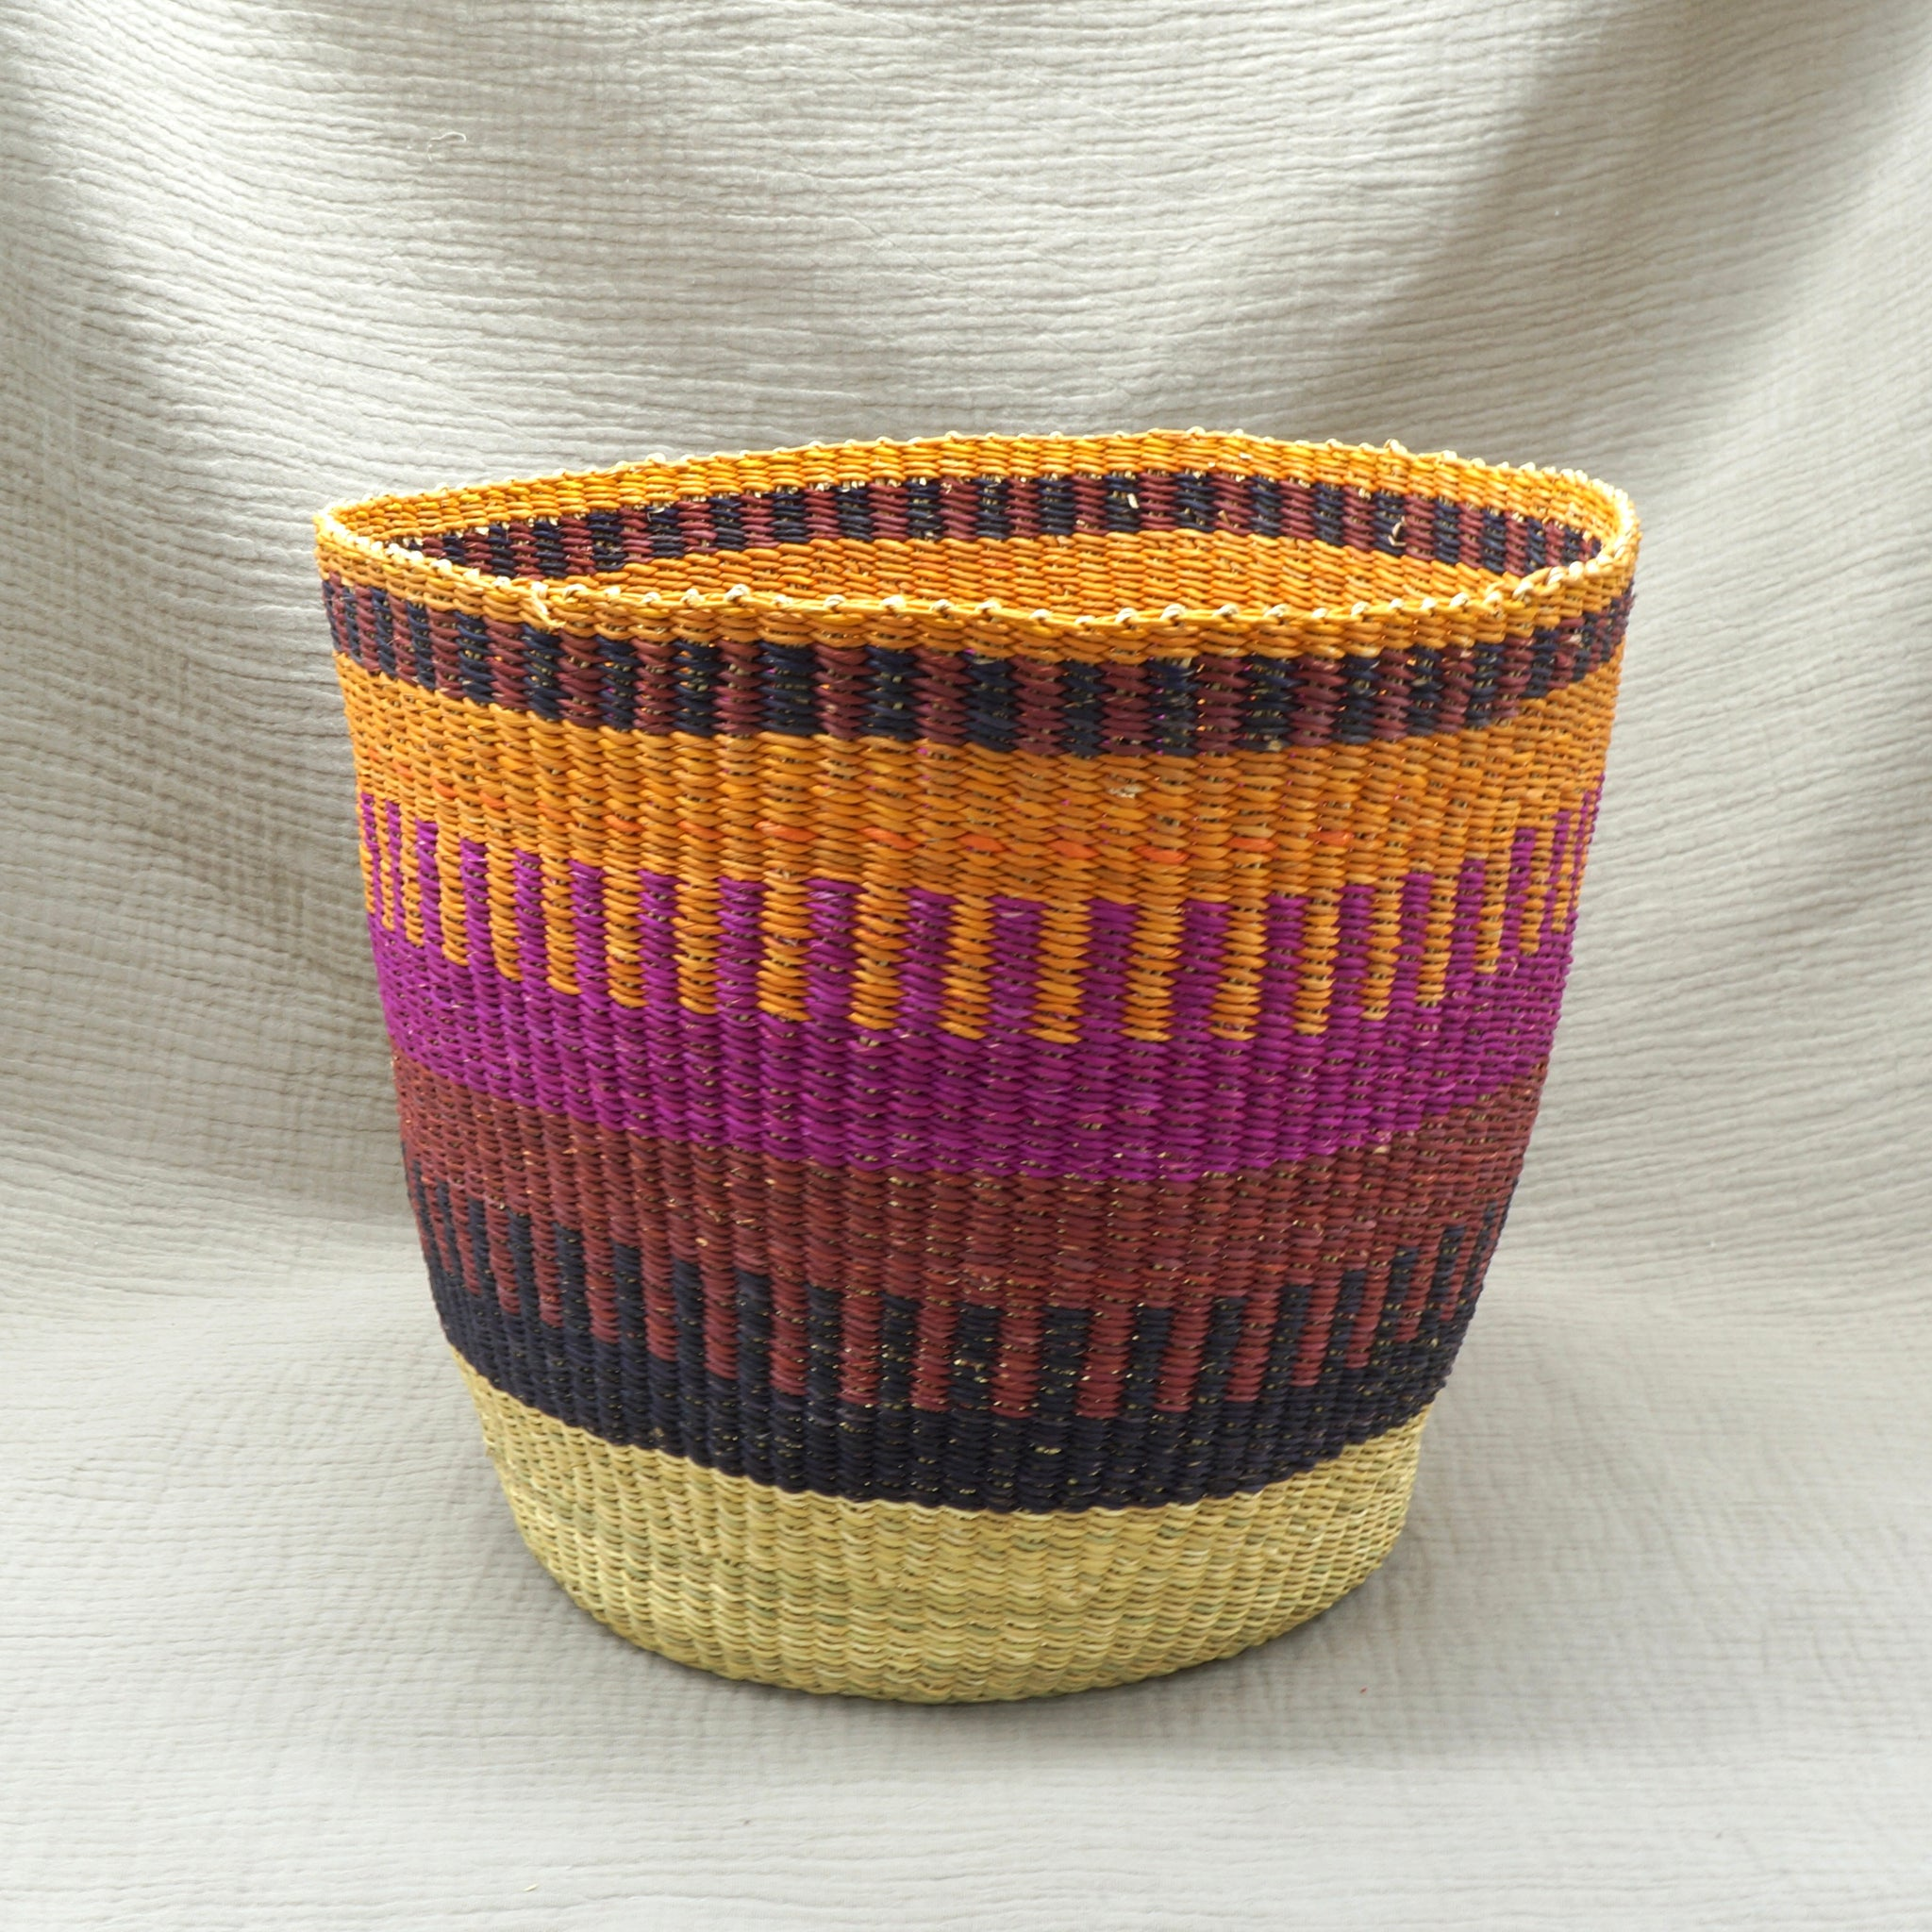 Kukutoes Planter, Colourful